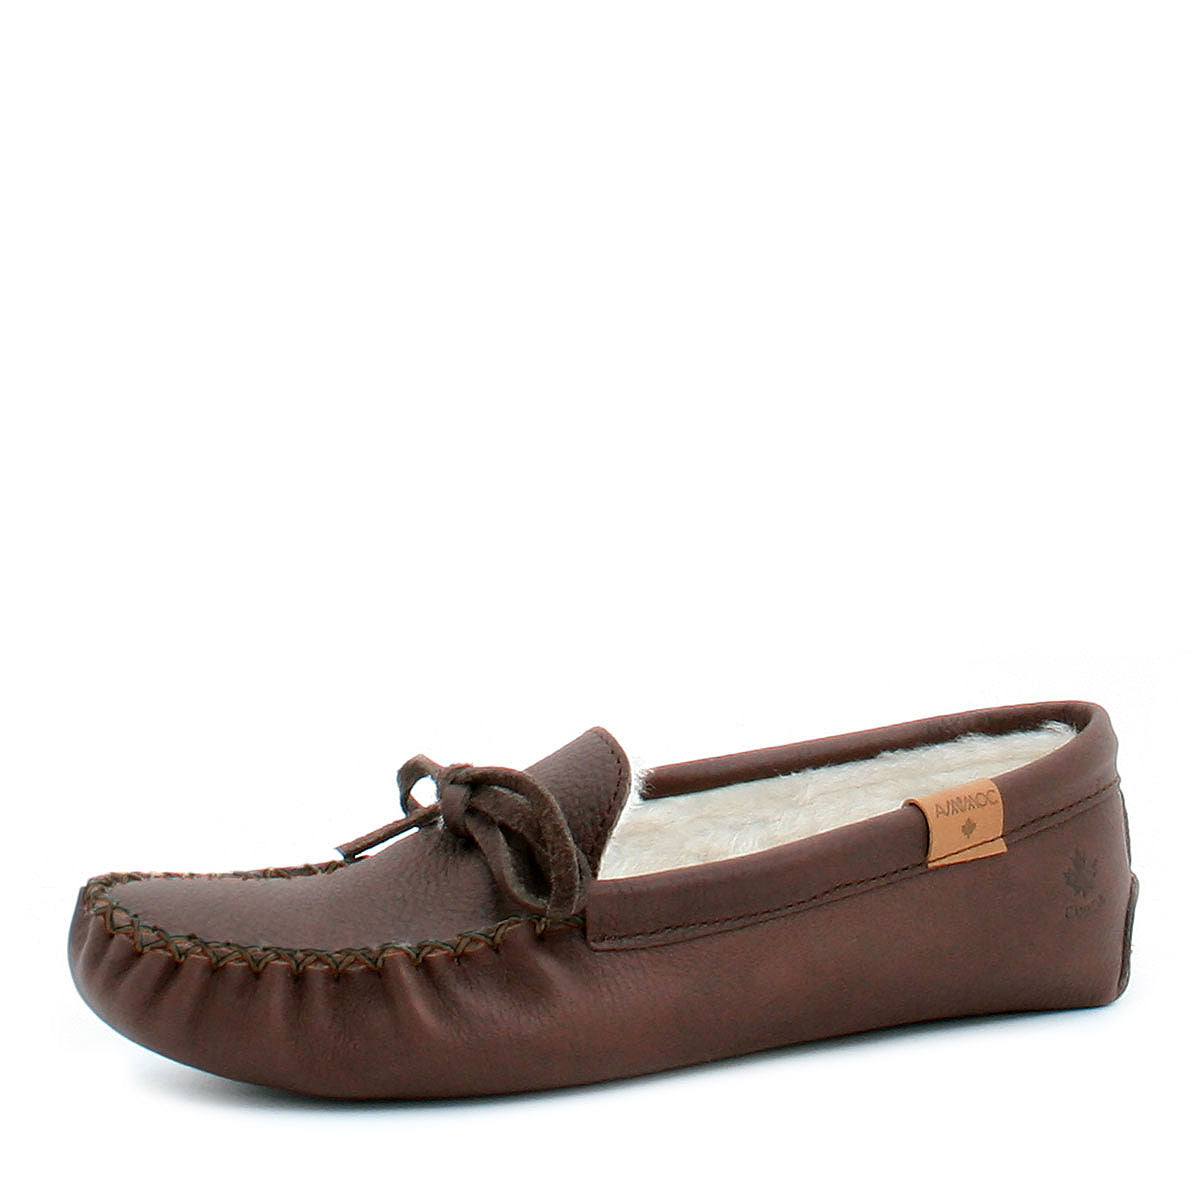 AMIMOC- Lenno grizzly brown moccasin for men